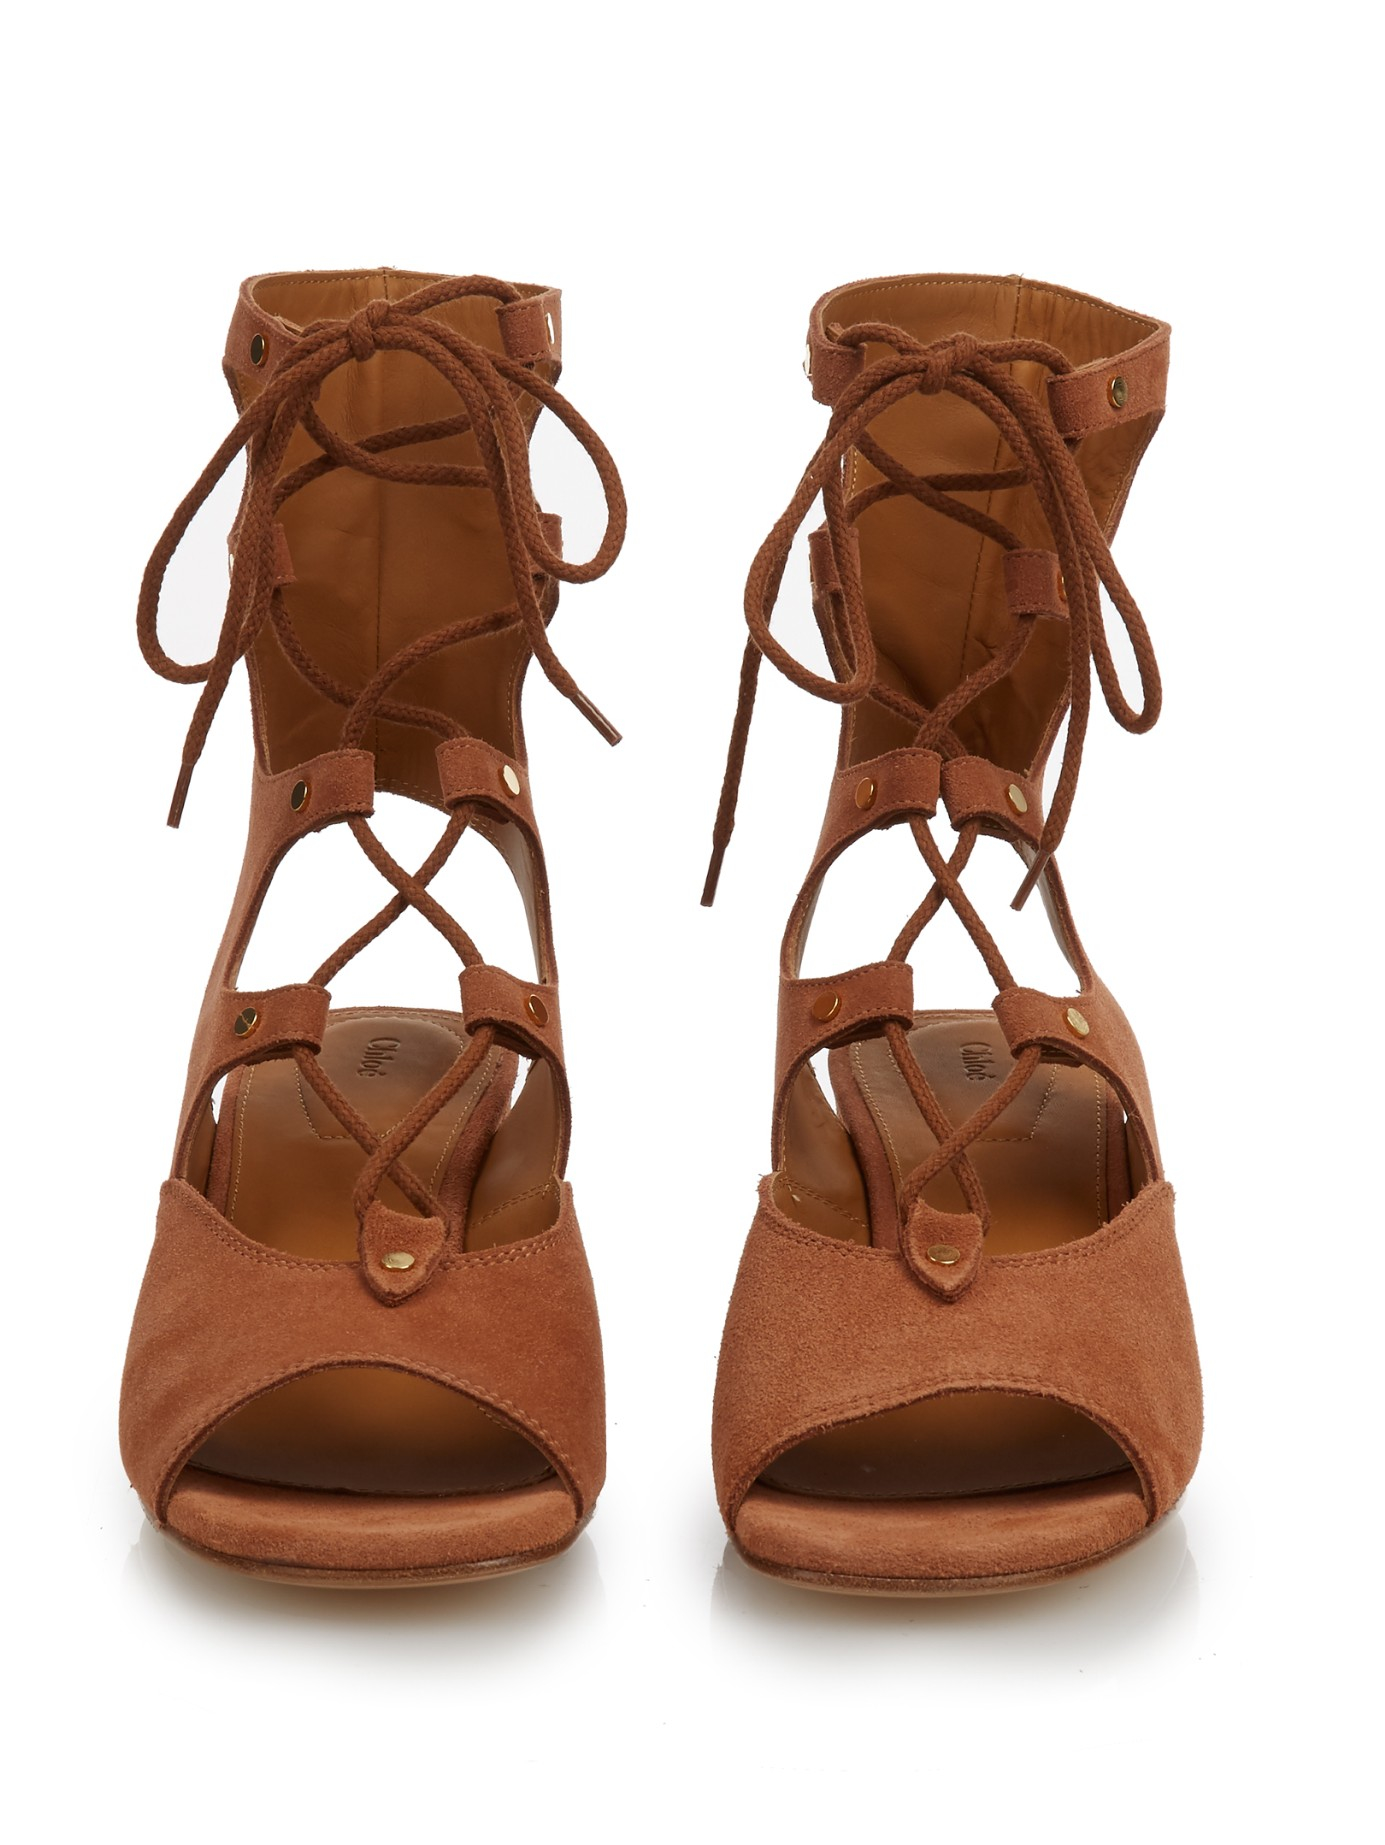 45c0e22d6cb Chloé Foster Lace-up Wedge Sandals in Brown - Lyst